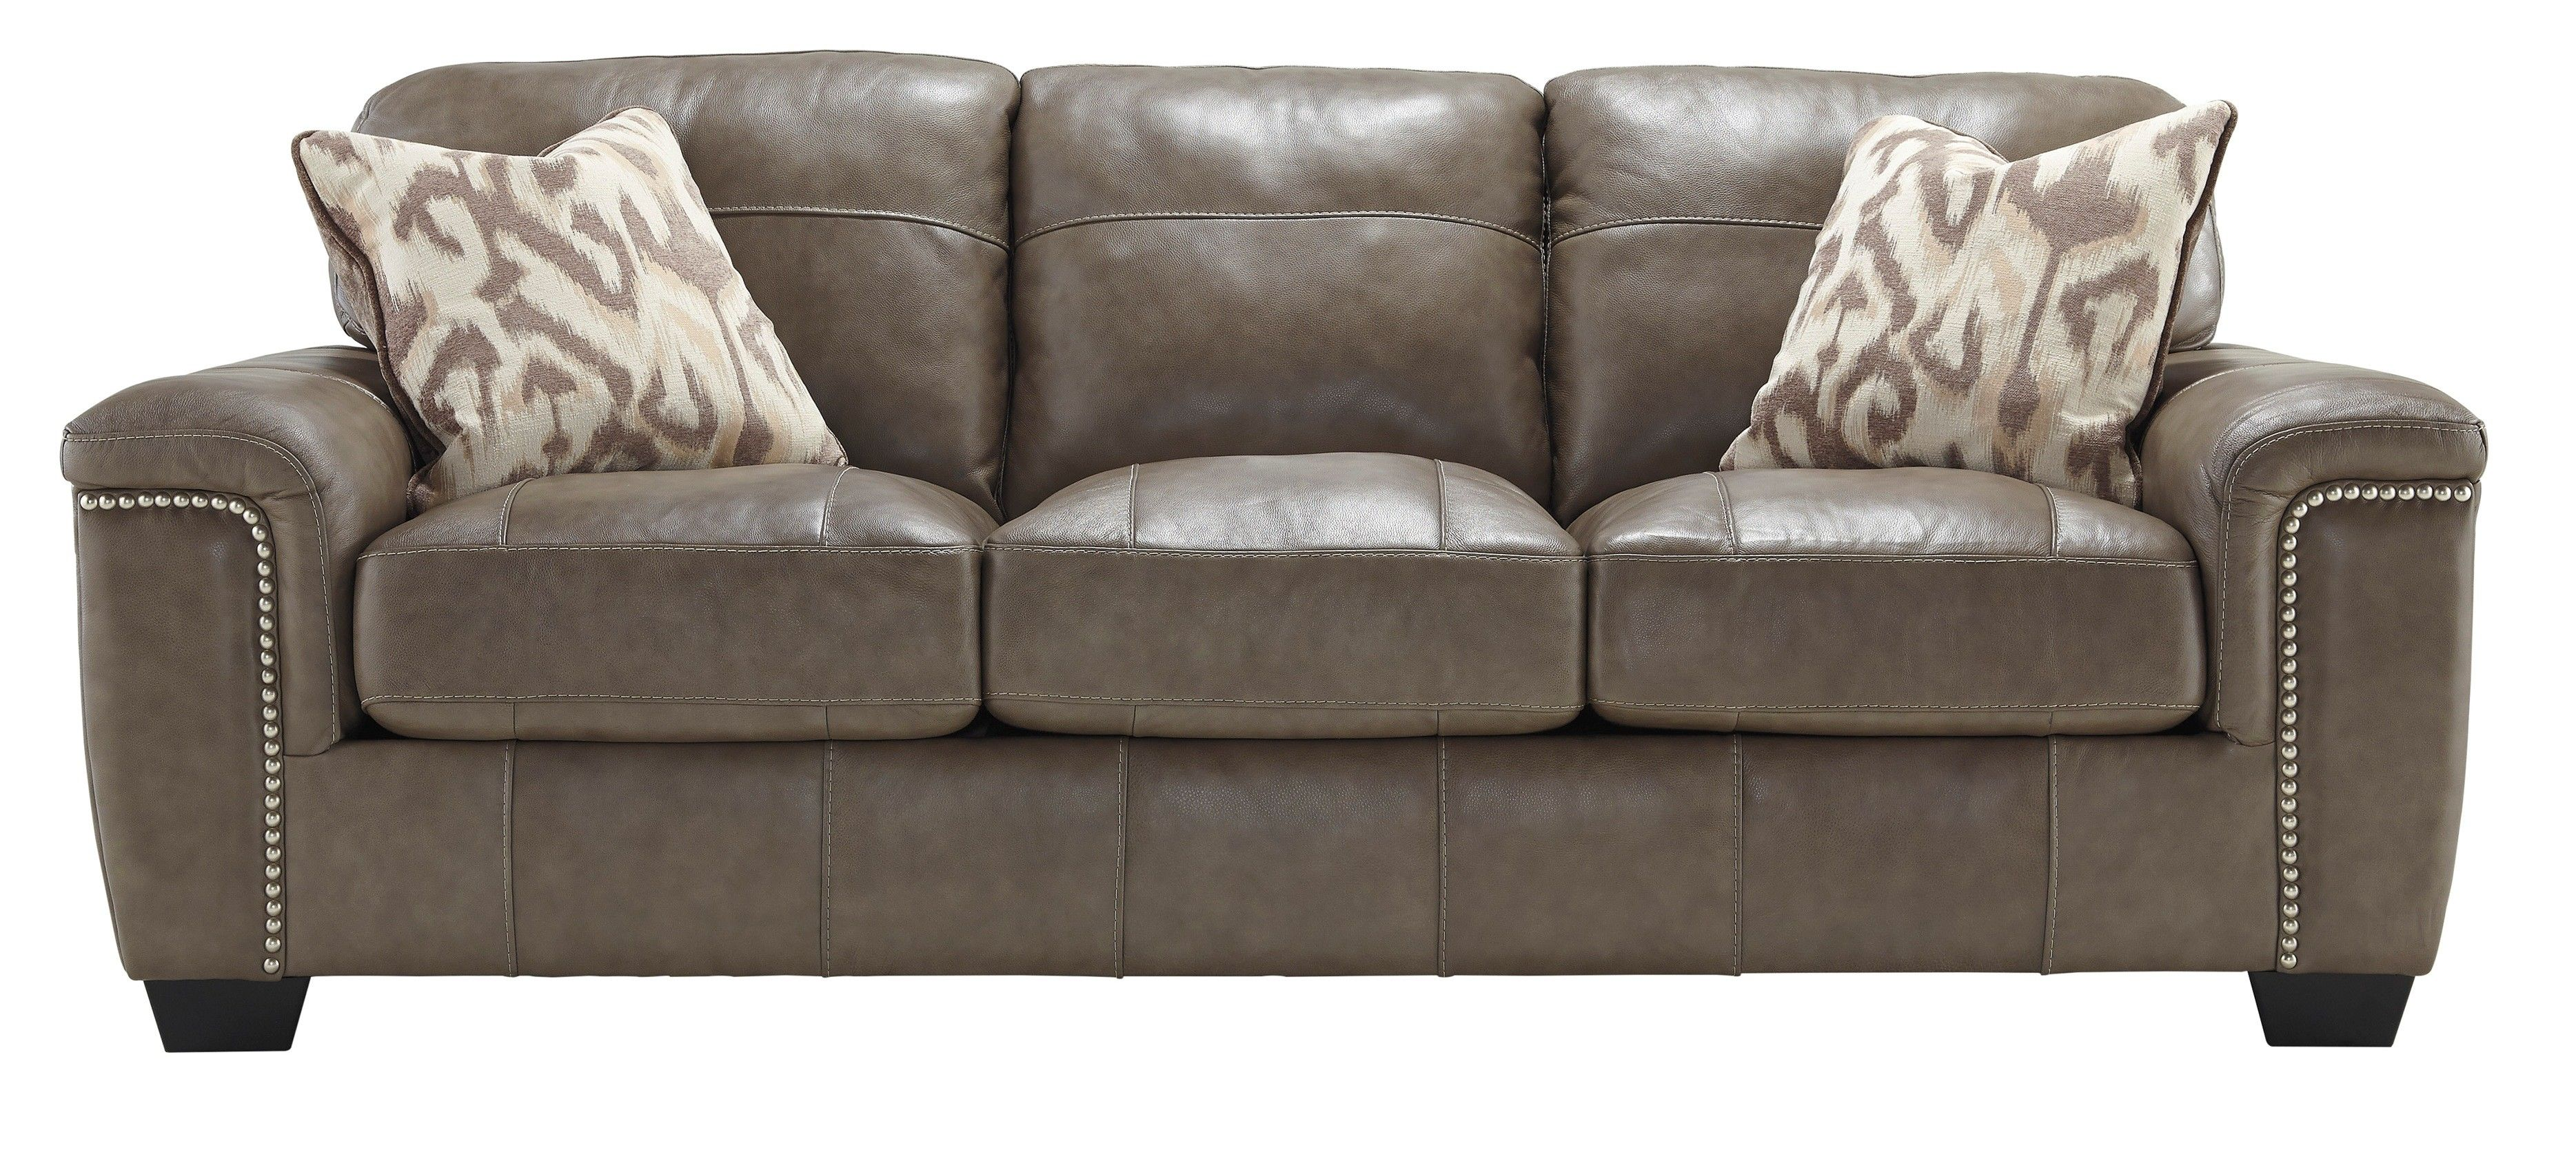 lovely karlstad sofa review model-Awesome Karlstad sofa Review Photo